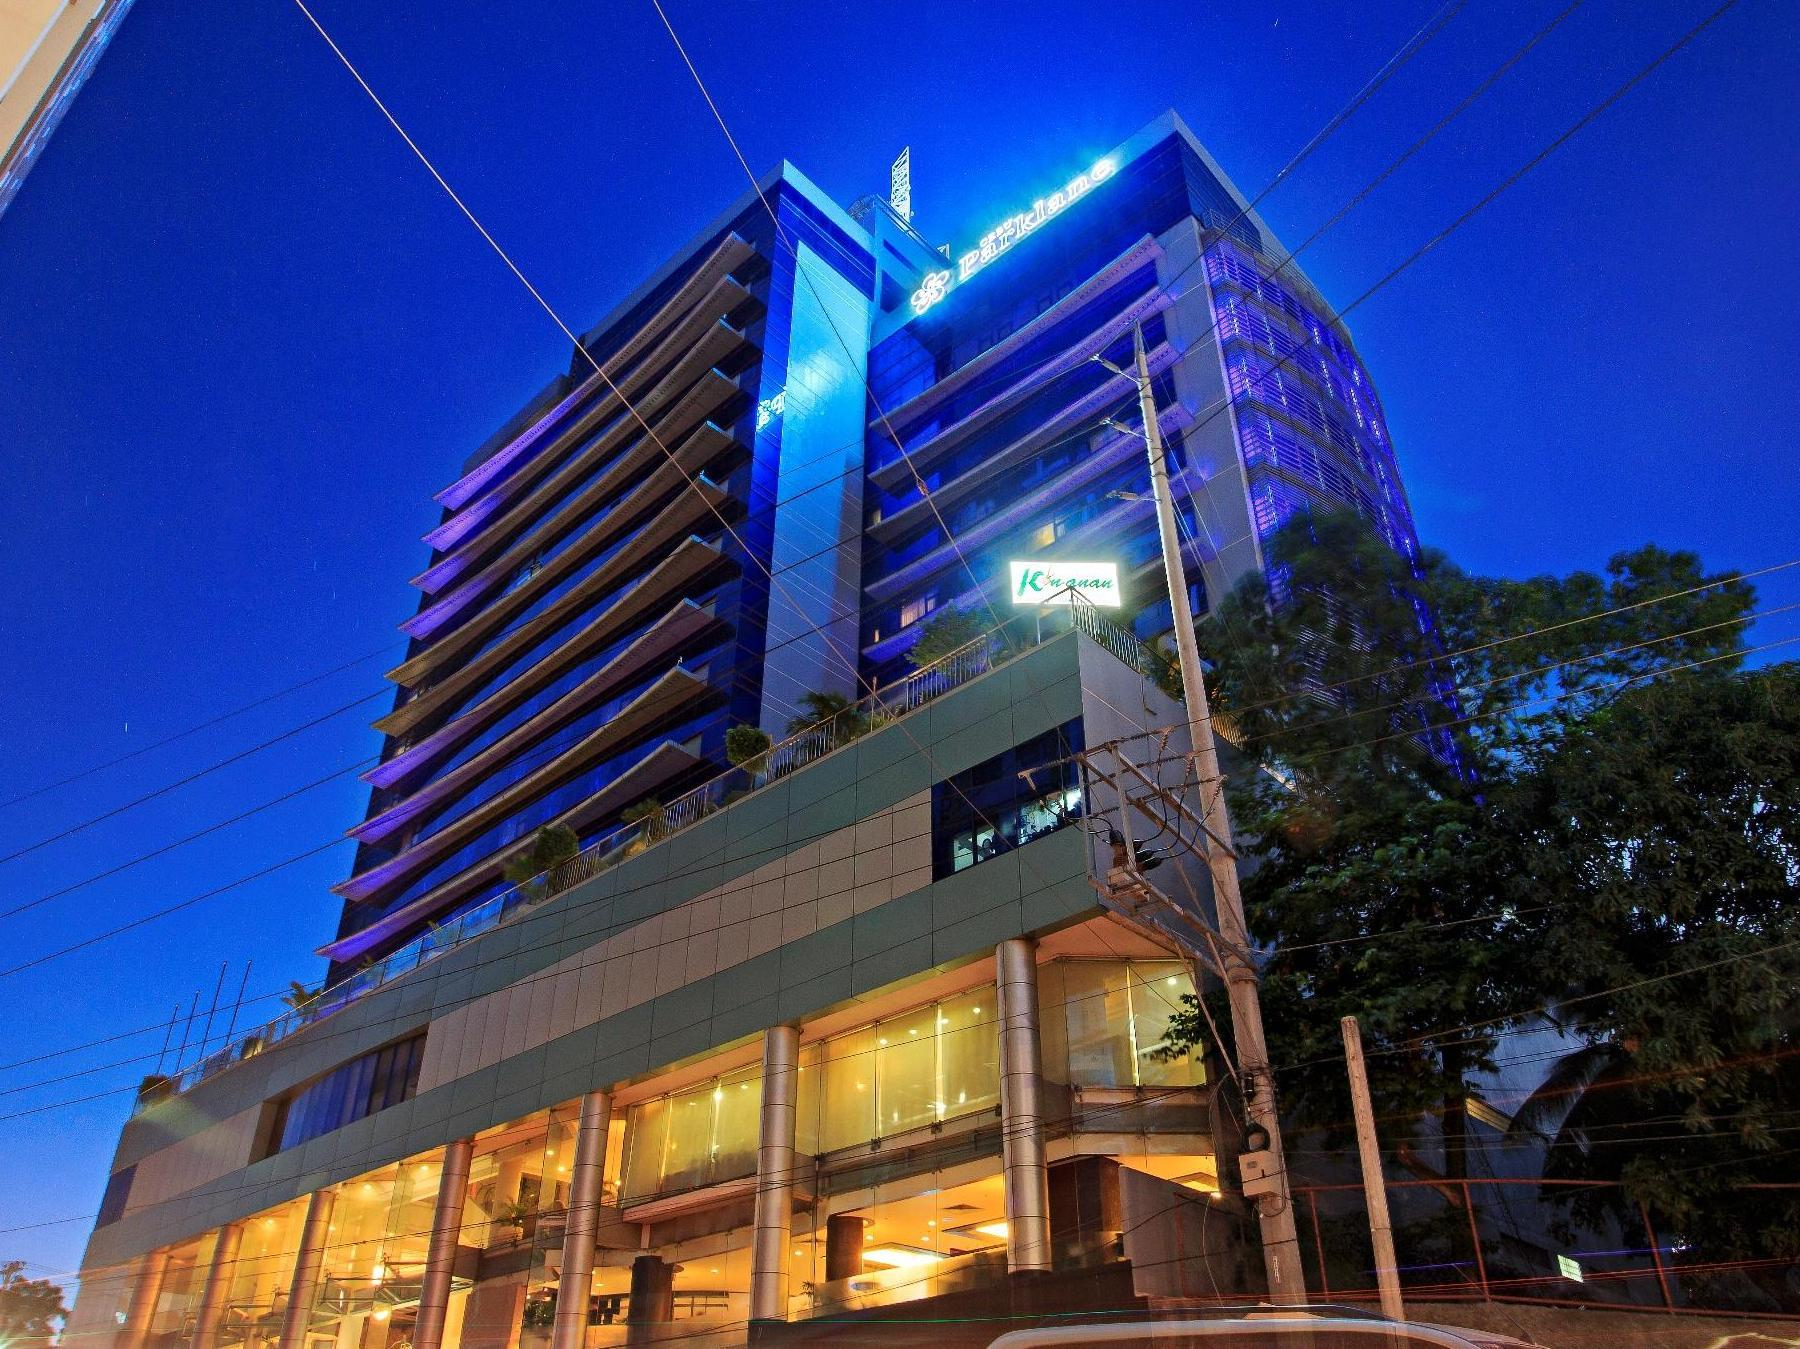 Cebu Parklane International Hotel 宿雾